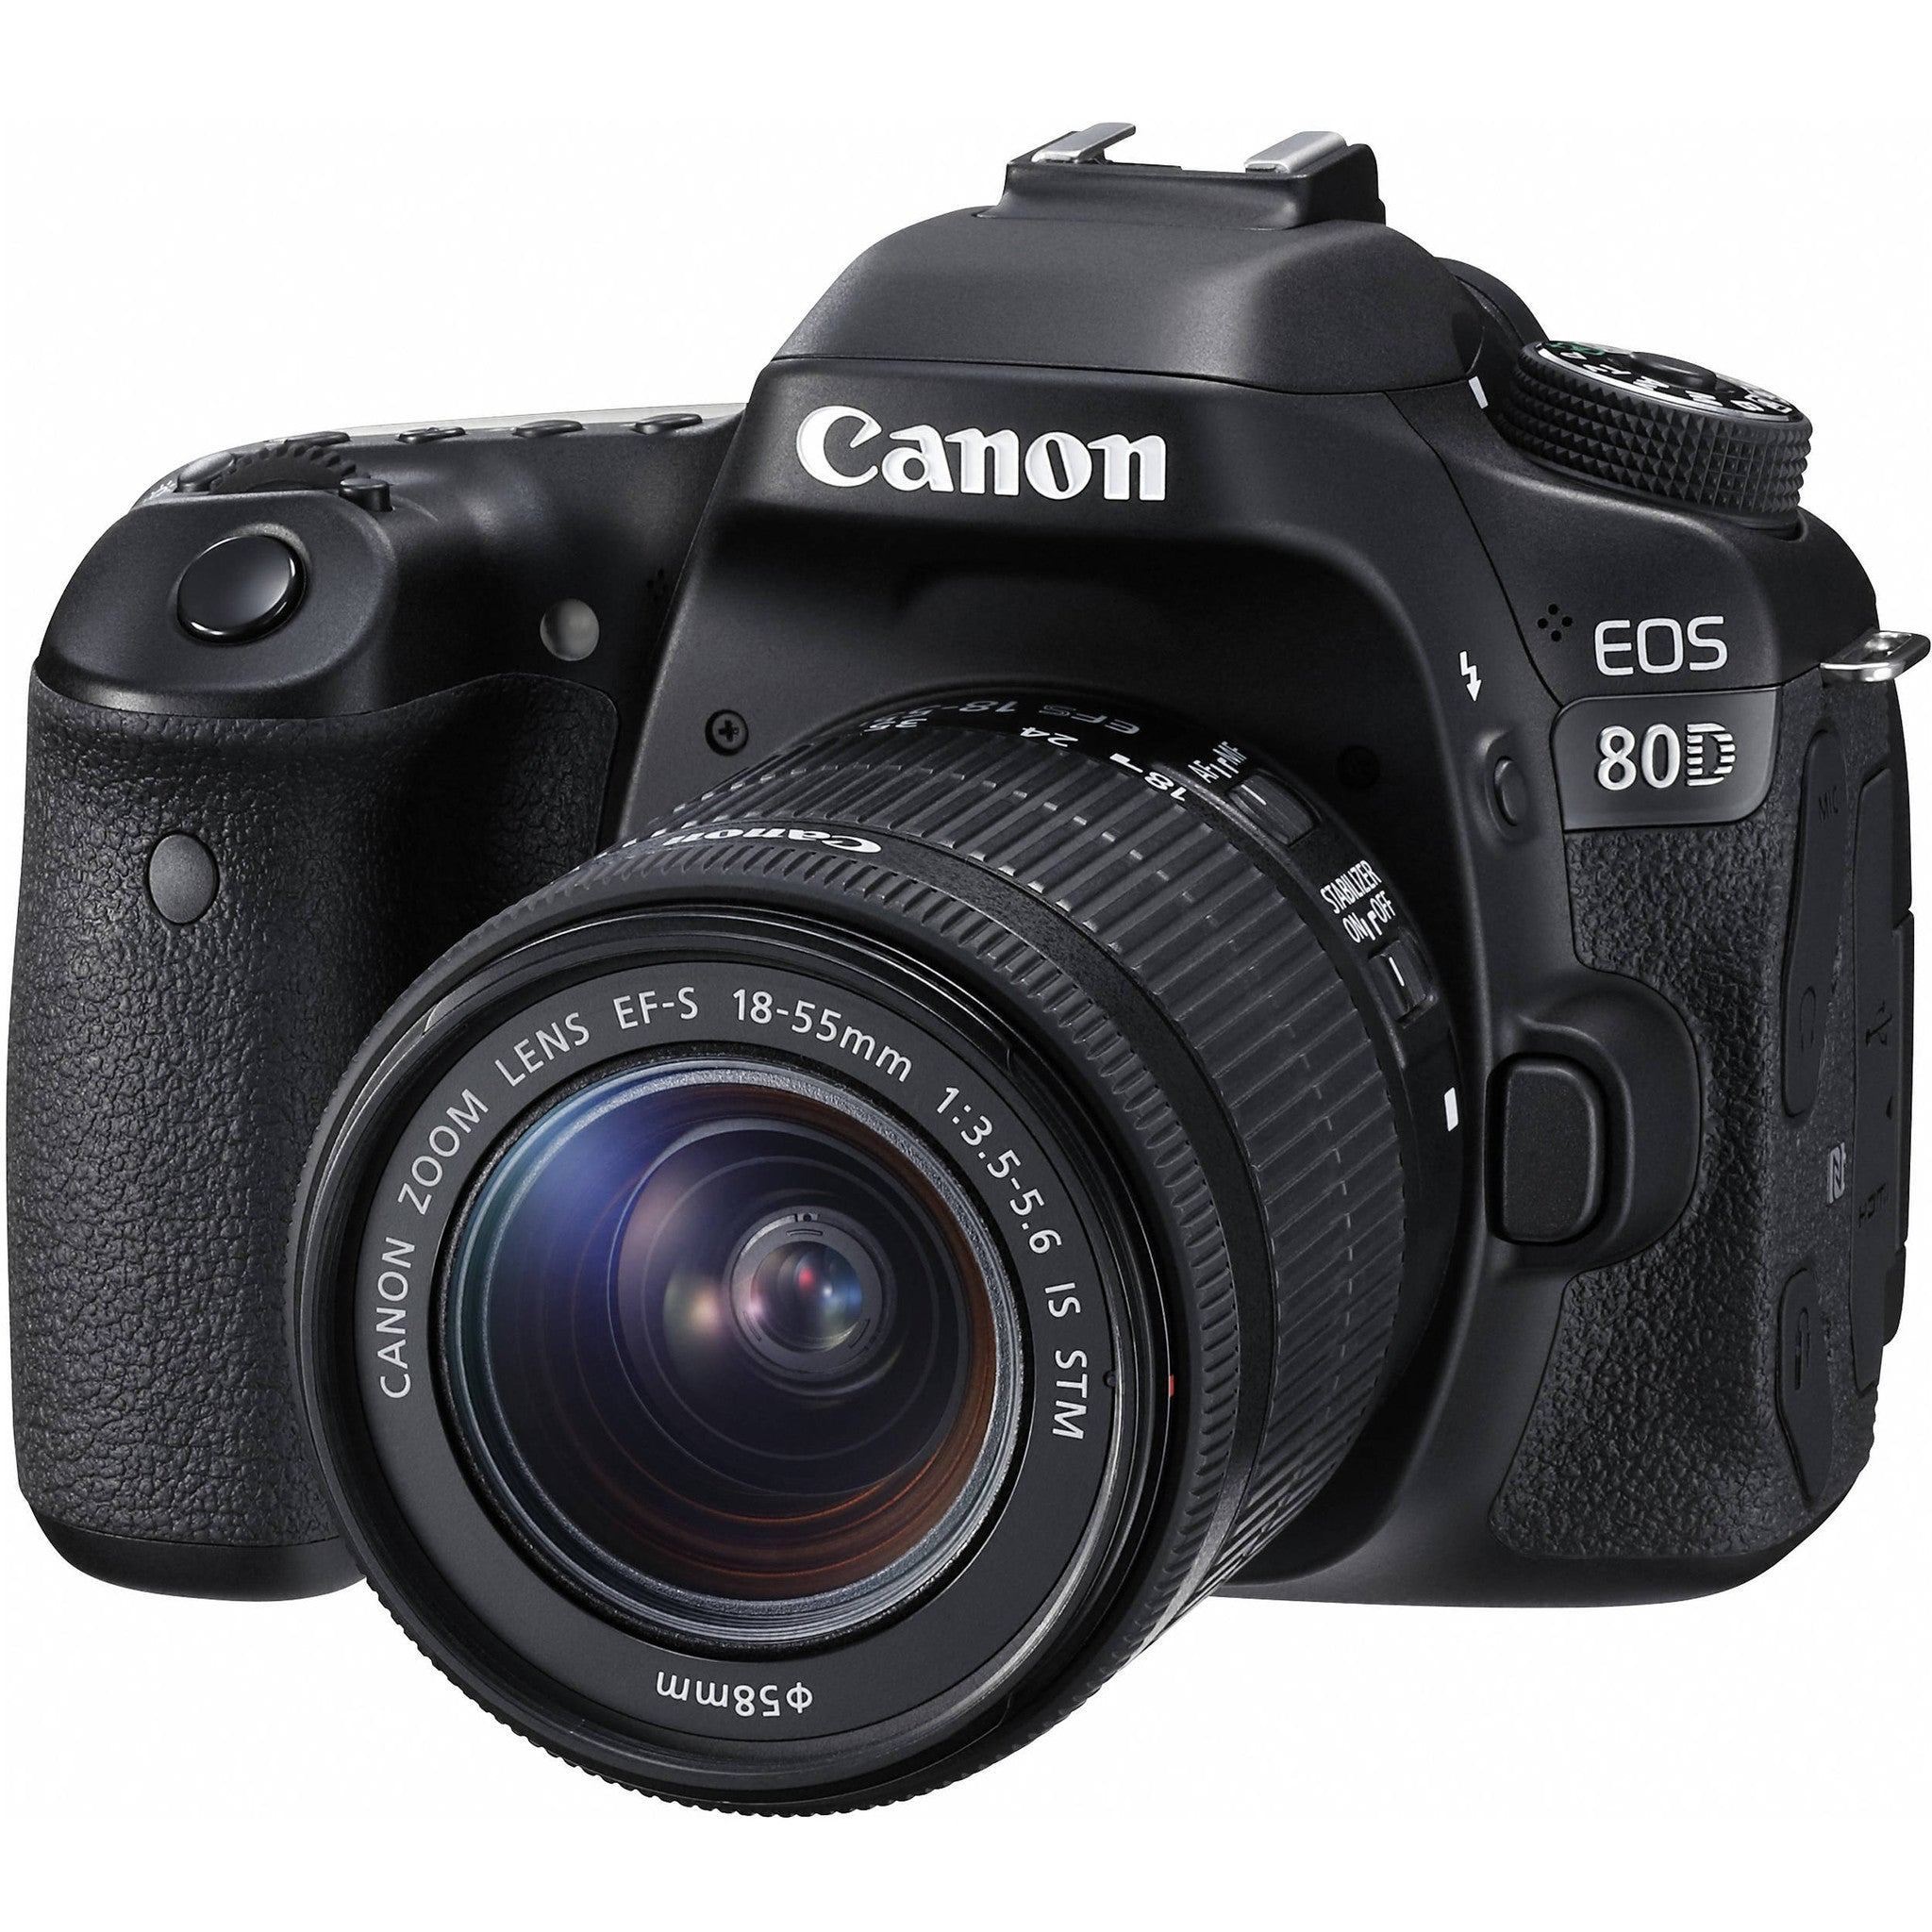 Canon EOS 80D EF-S 18-55mm f/3.5-5.6 IS STM Kit